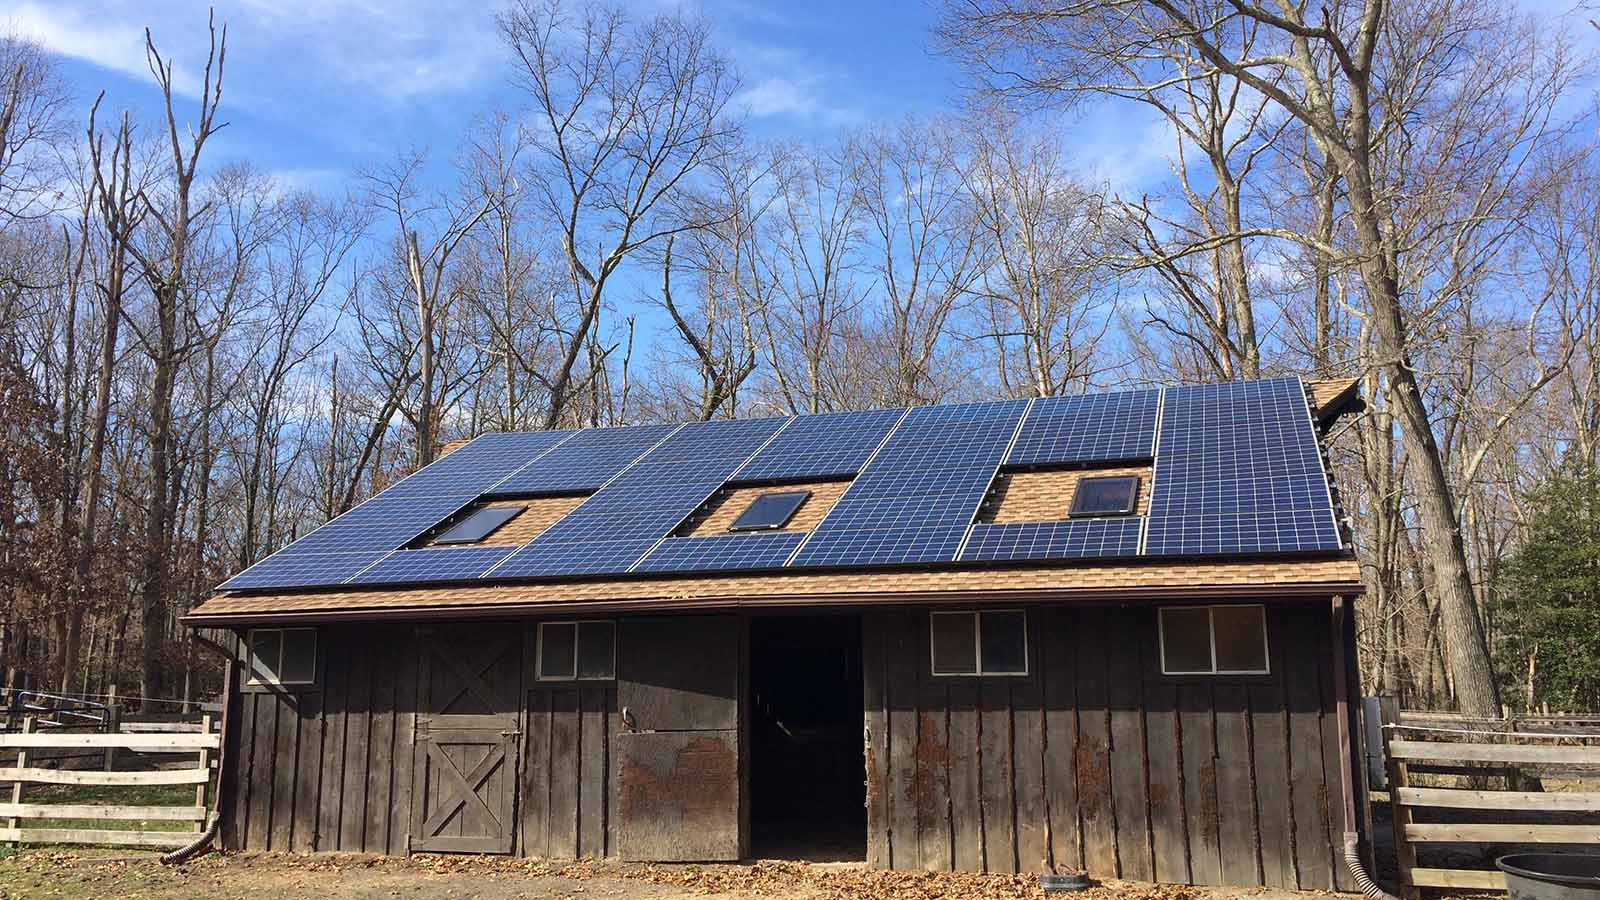 Roof mounted solar panels on a barn